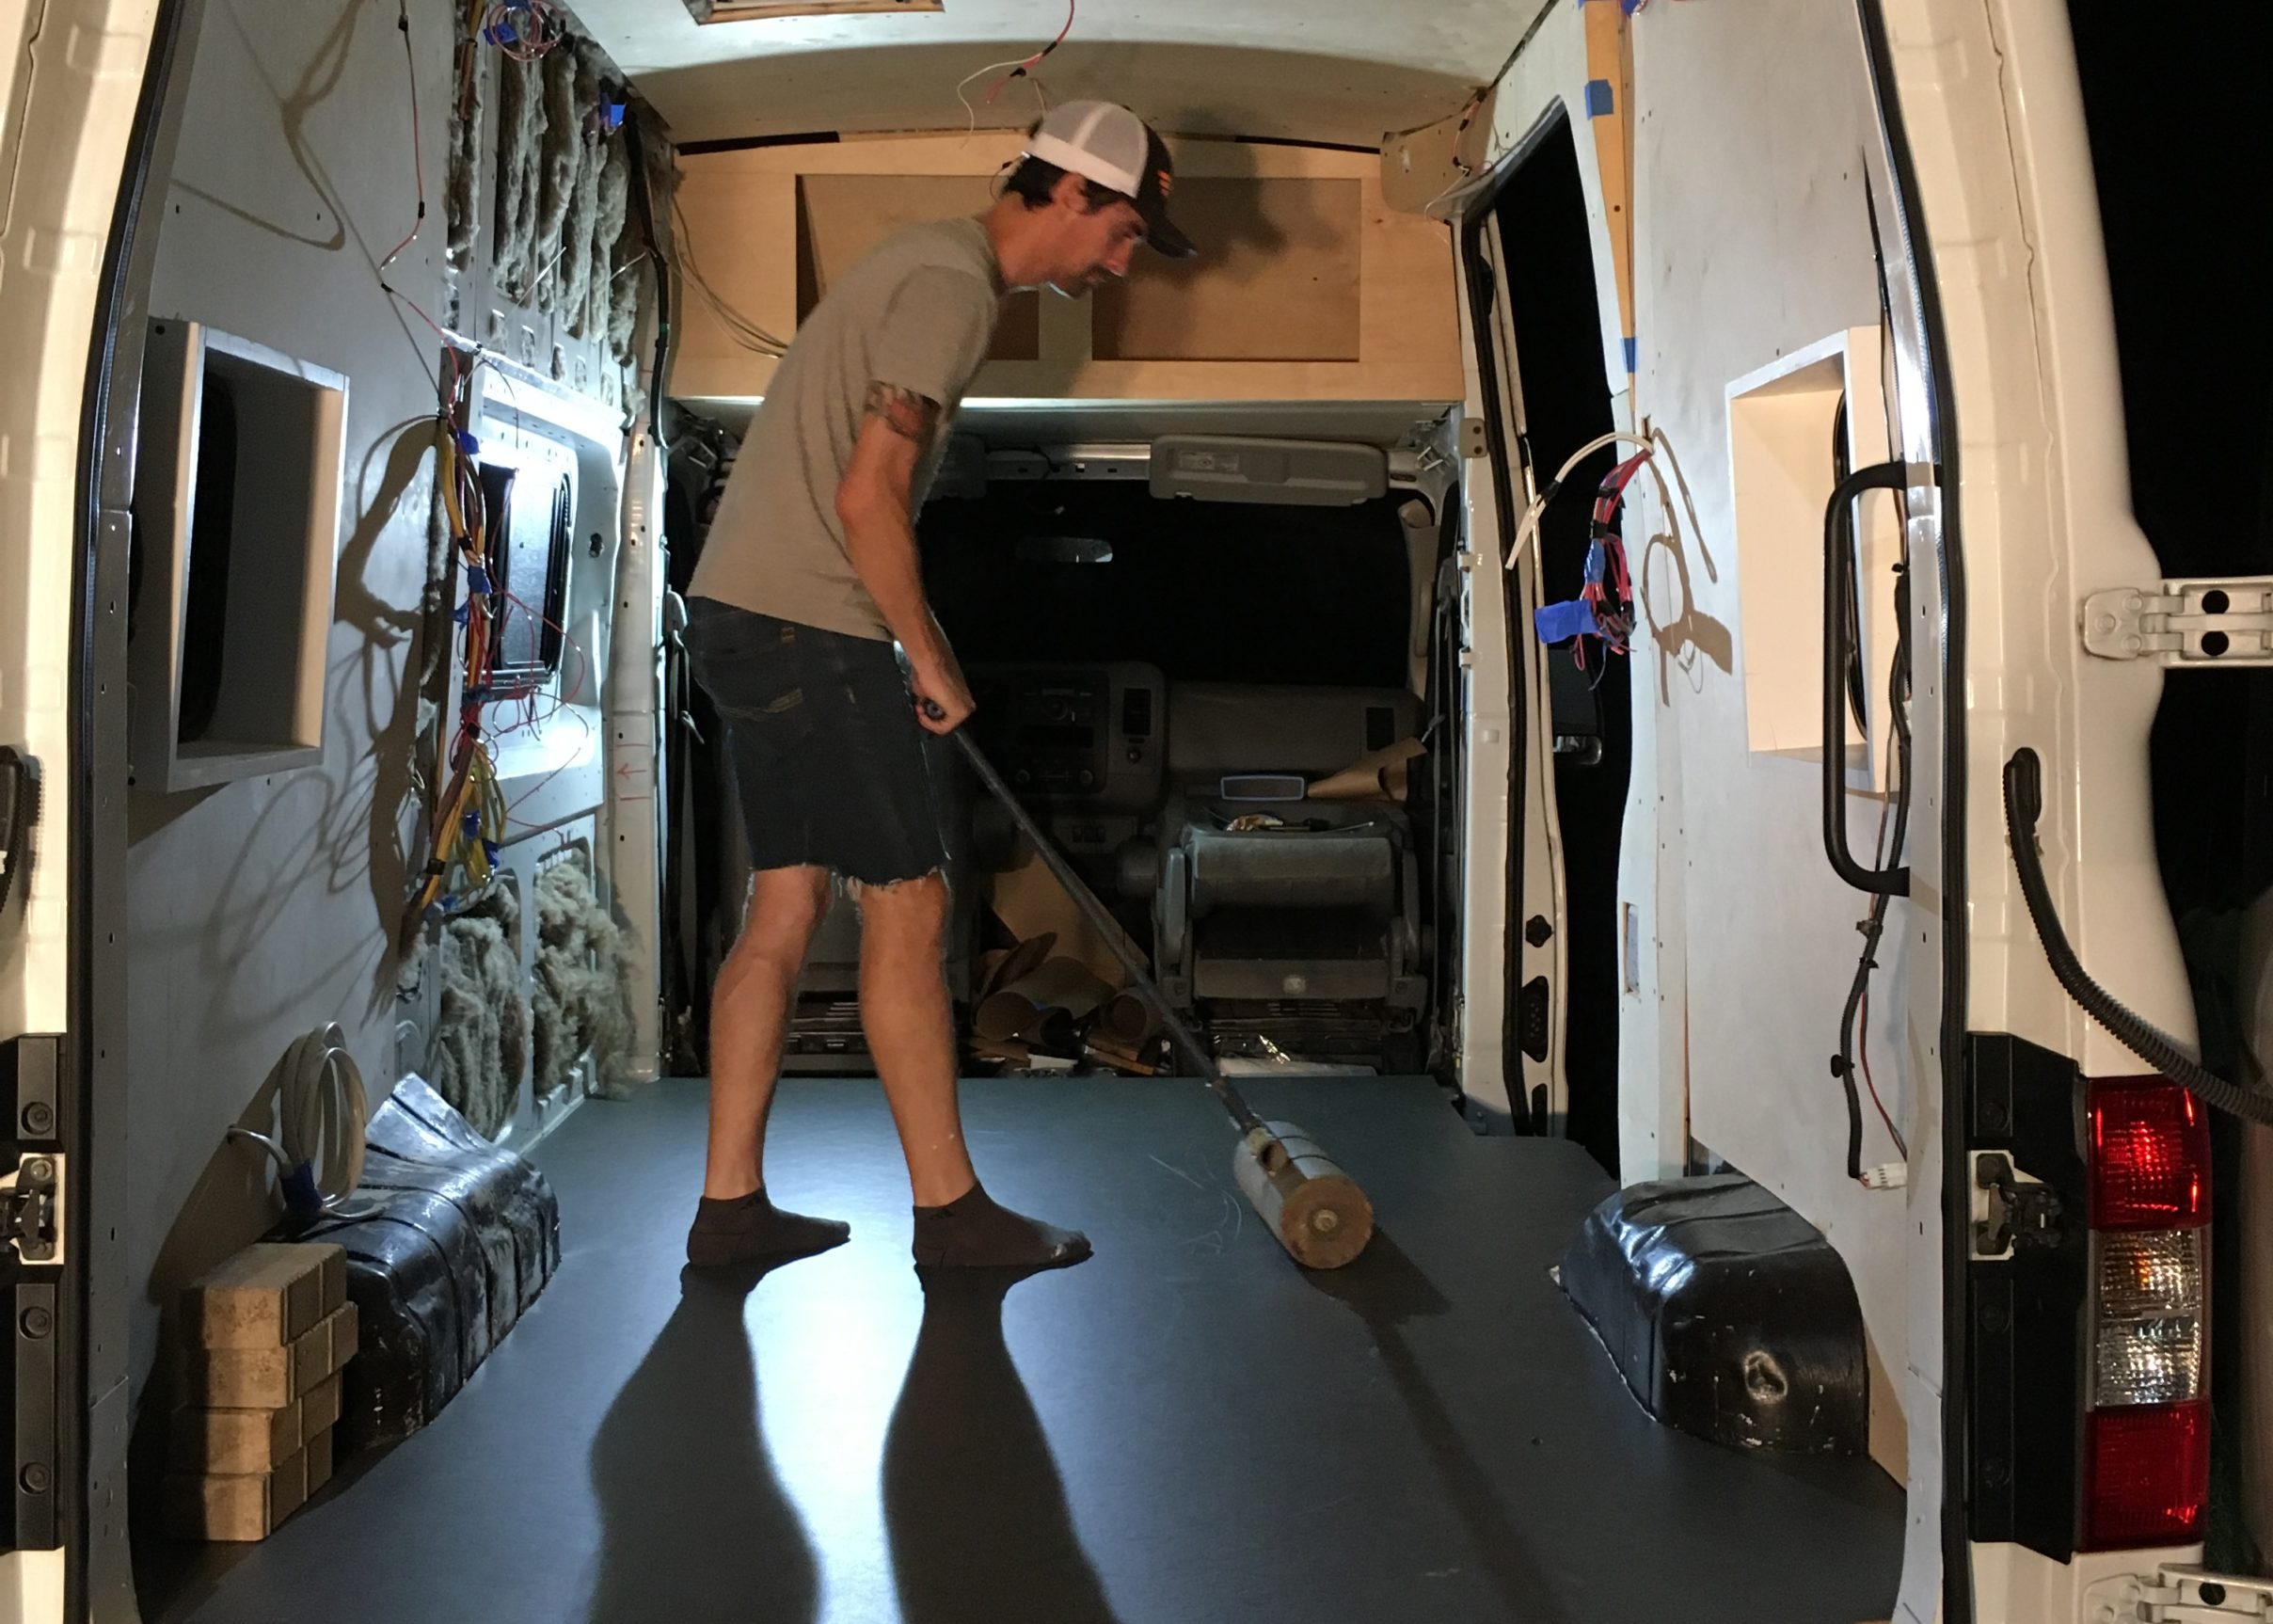 Non Toxic Flooring For A Diy Camper Van